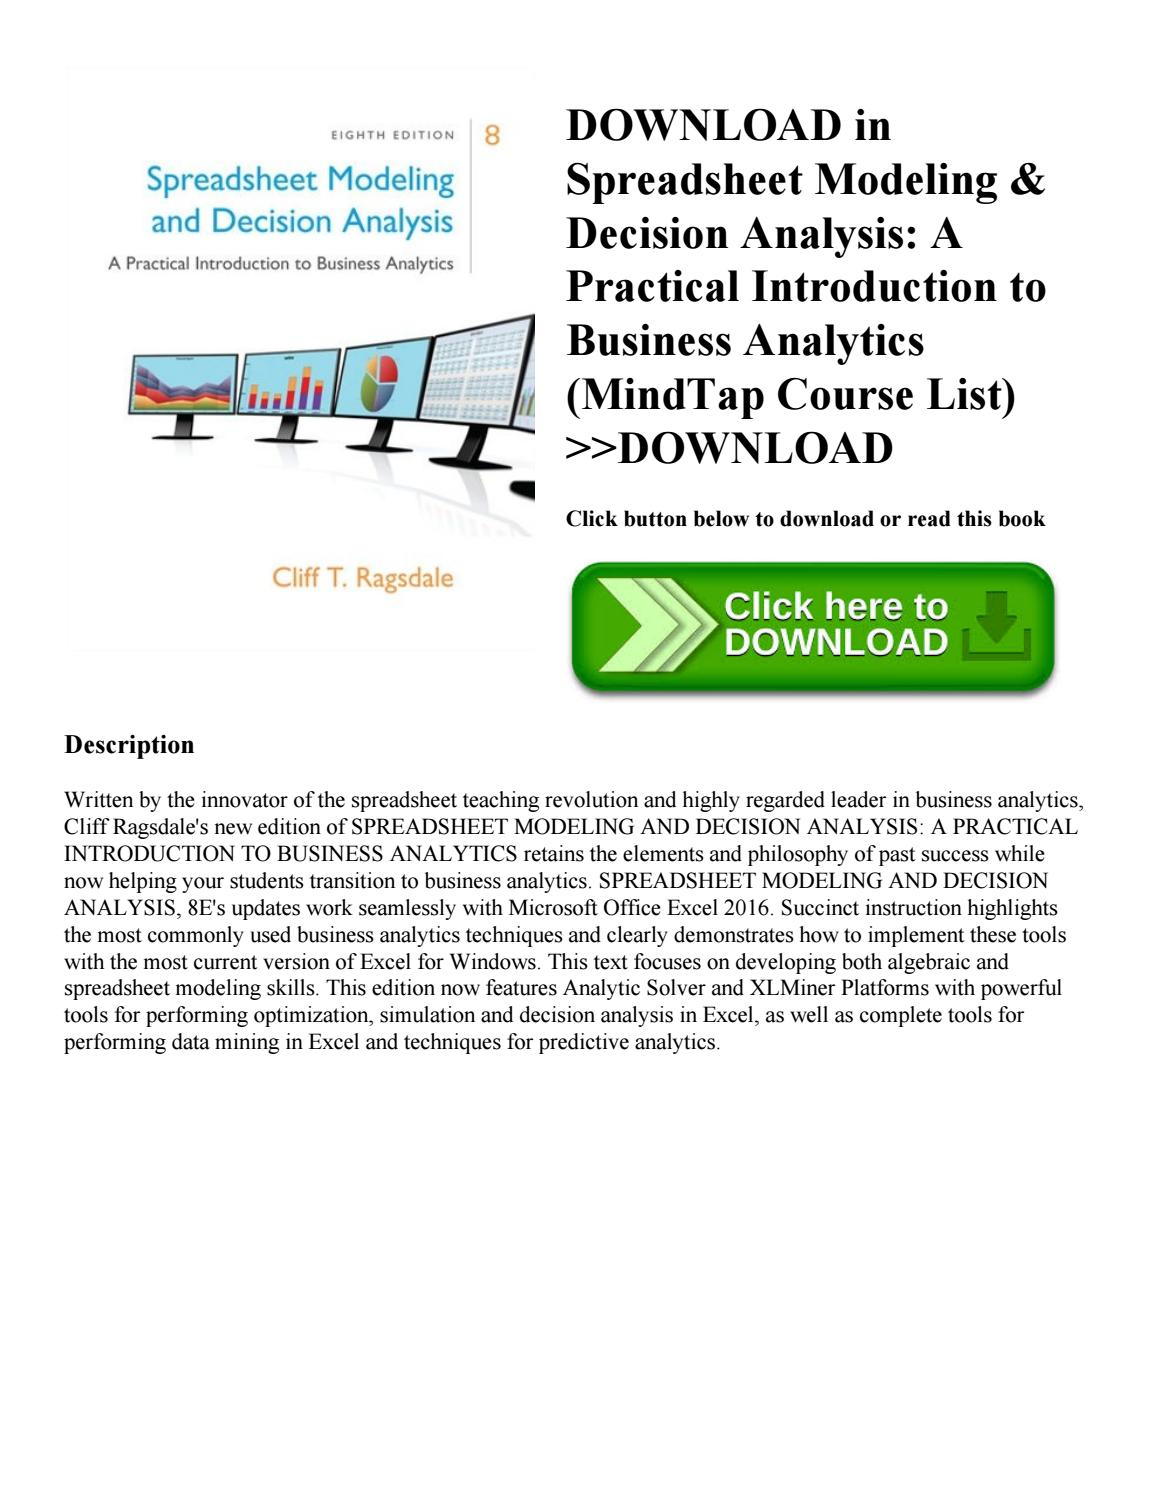 Spreadsheet Modeling For Download In [Pdf] Spreadsheet Modeling  Decision Analysis A